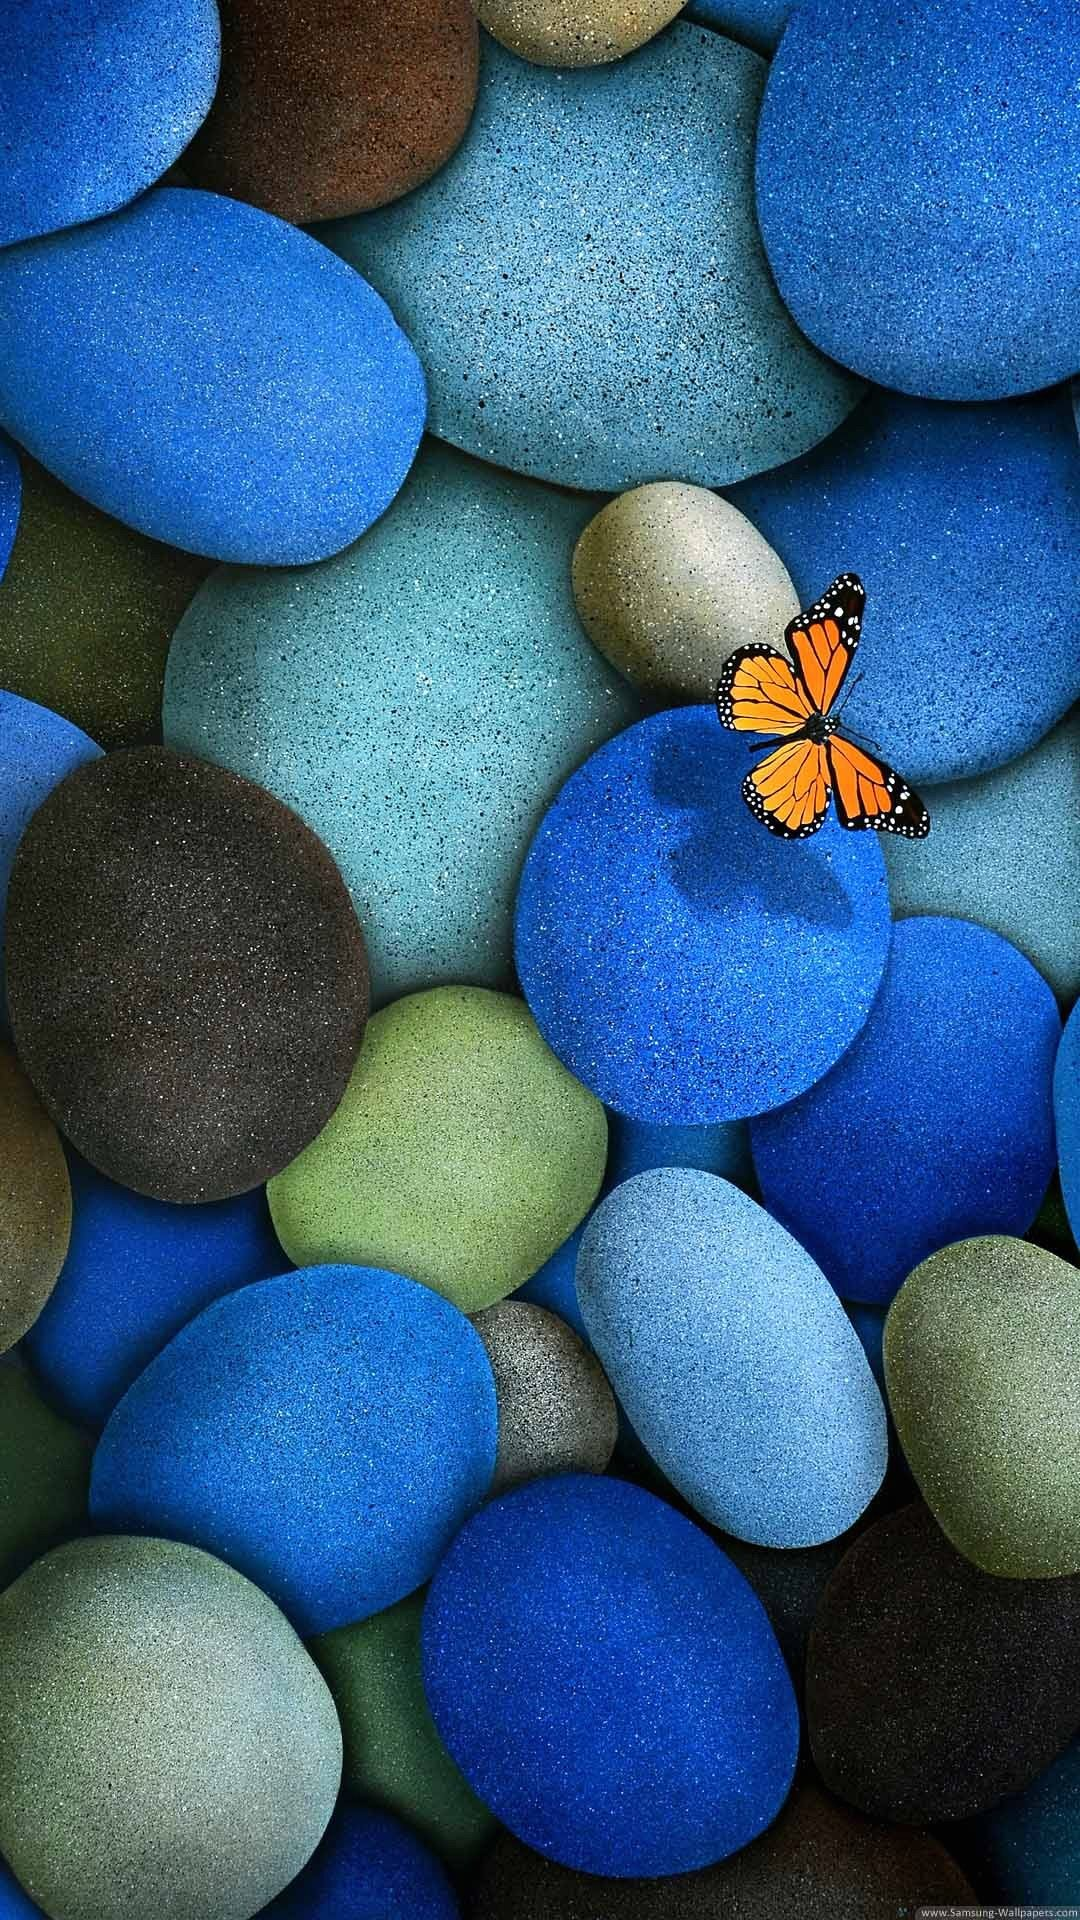 1080x1920 Wallpaper full hd 1080 x 1920 smartphone butterfly and stones